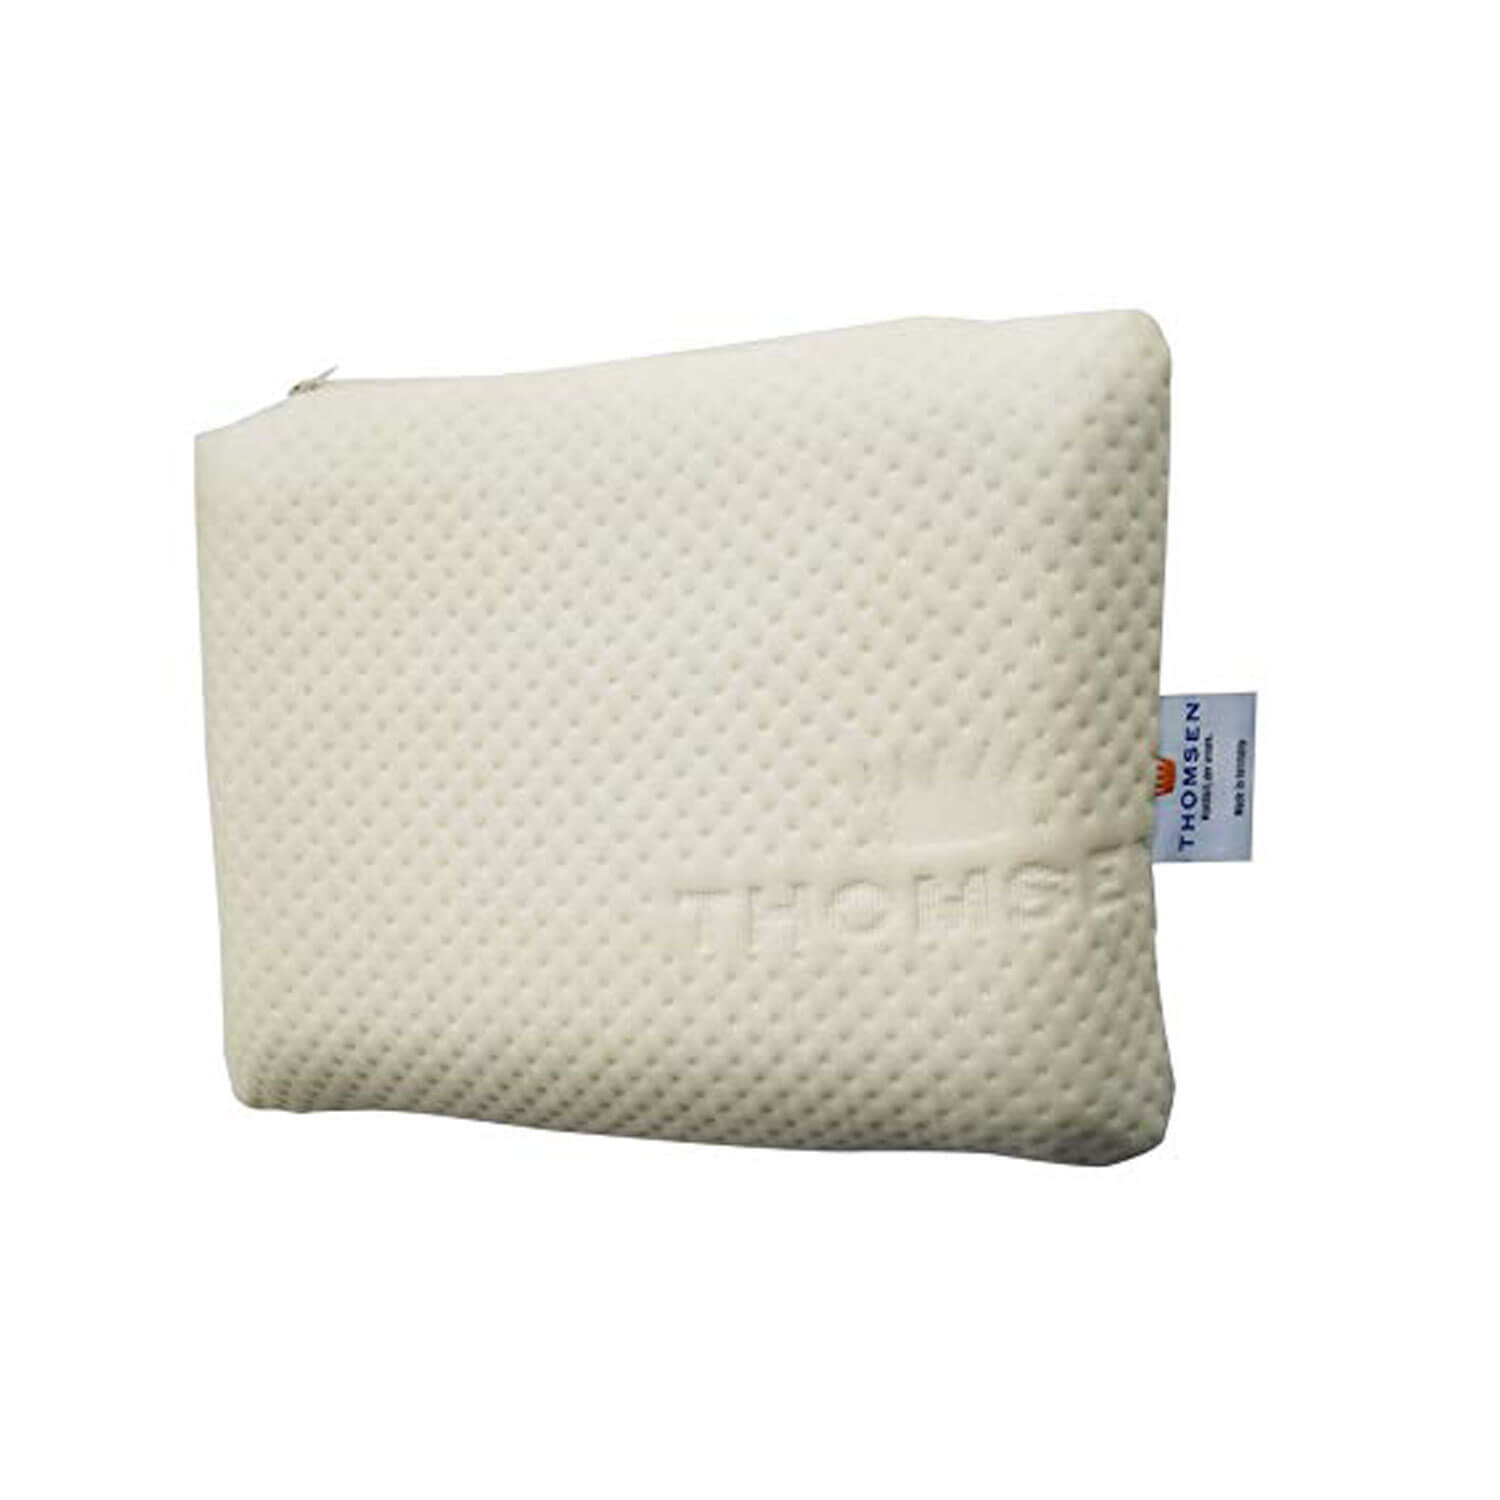 Thomsen Vita Talalay Latex Baby Pillow